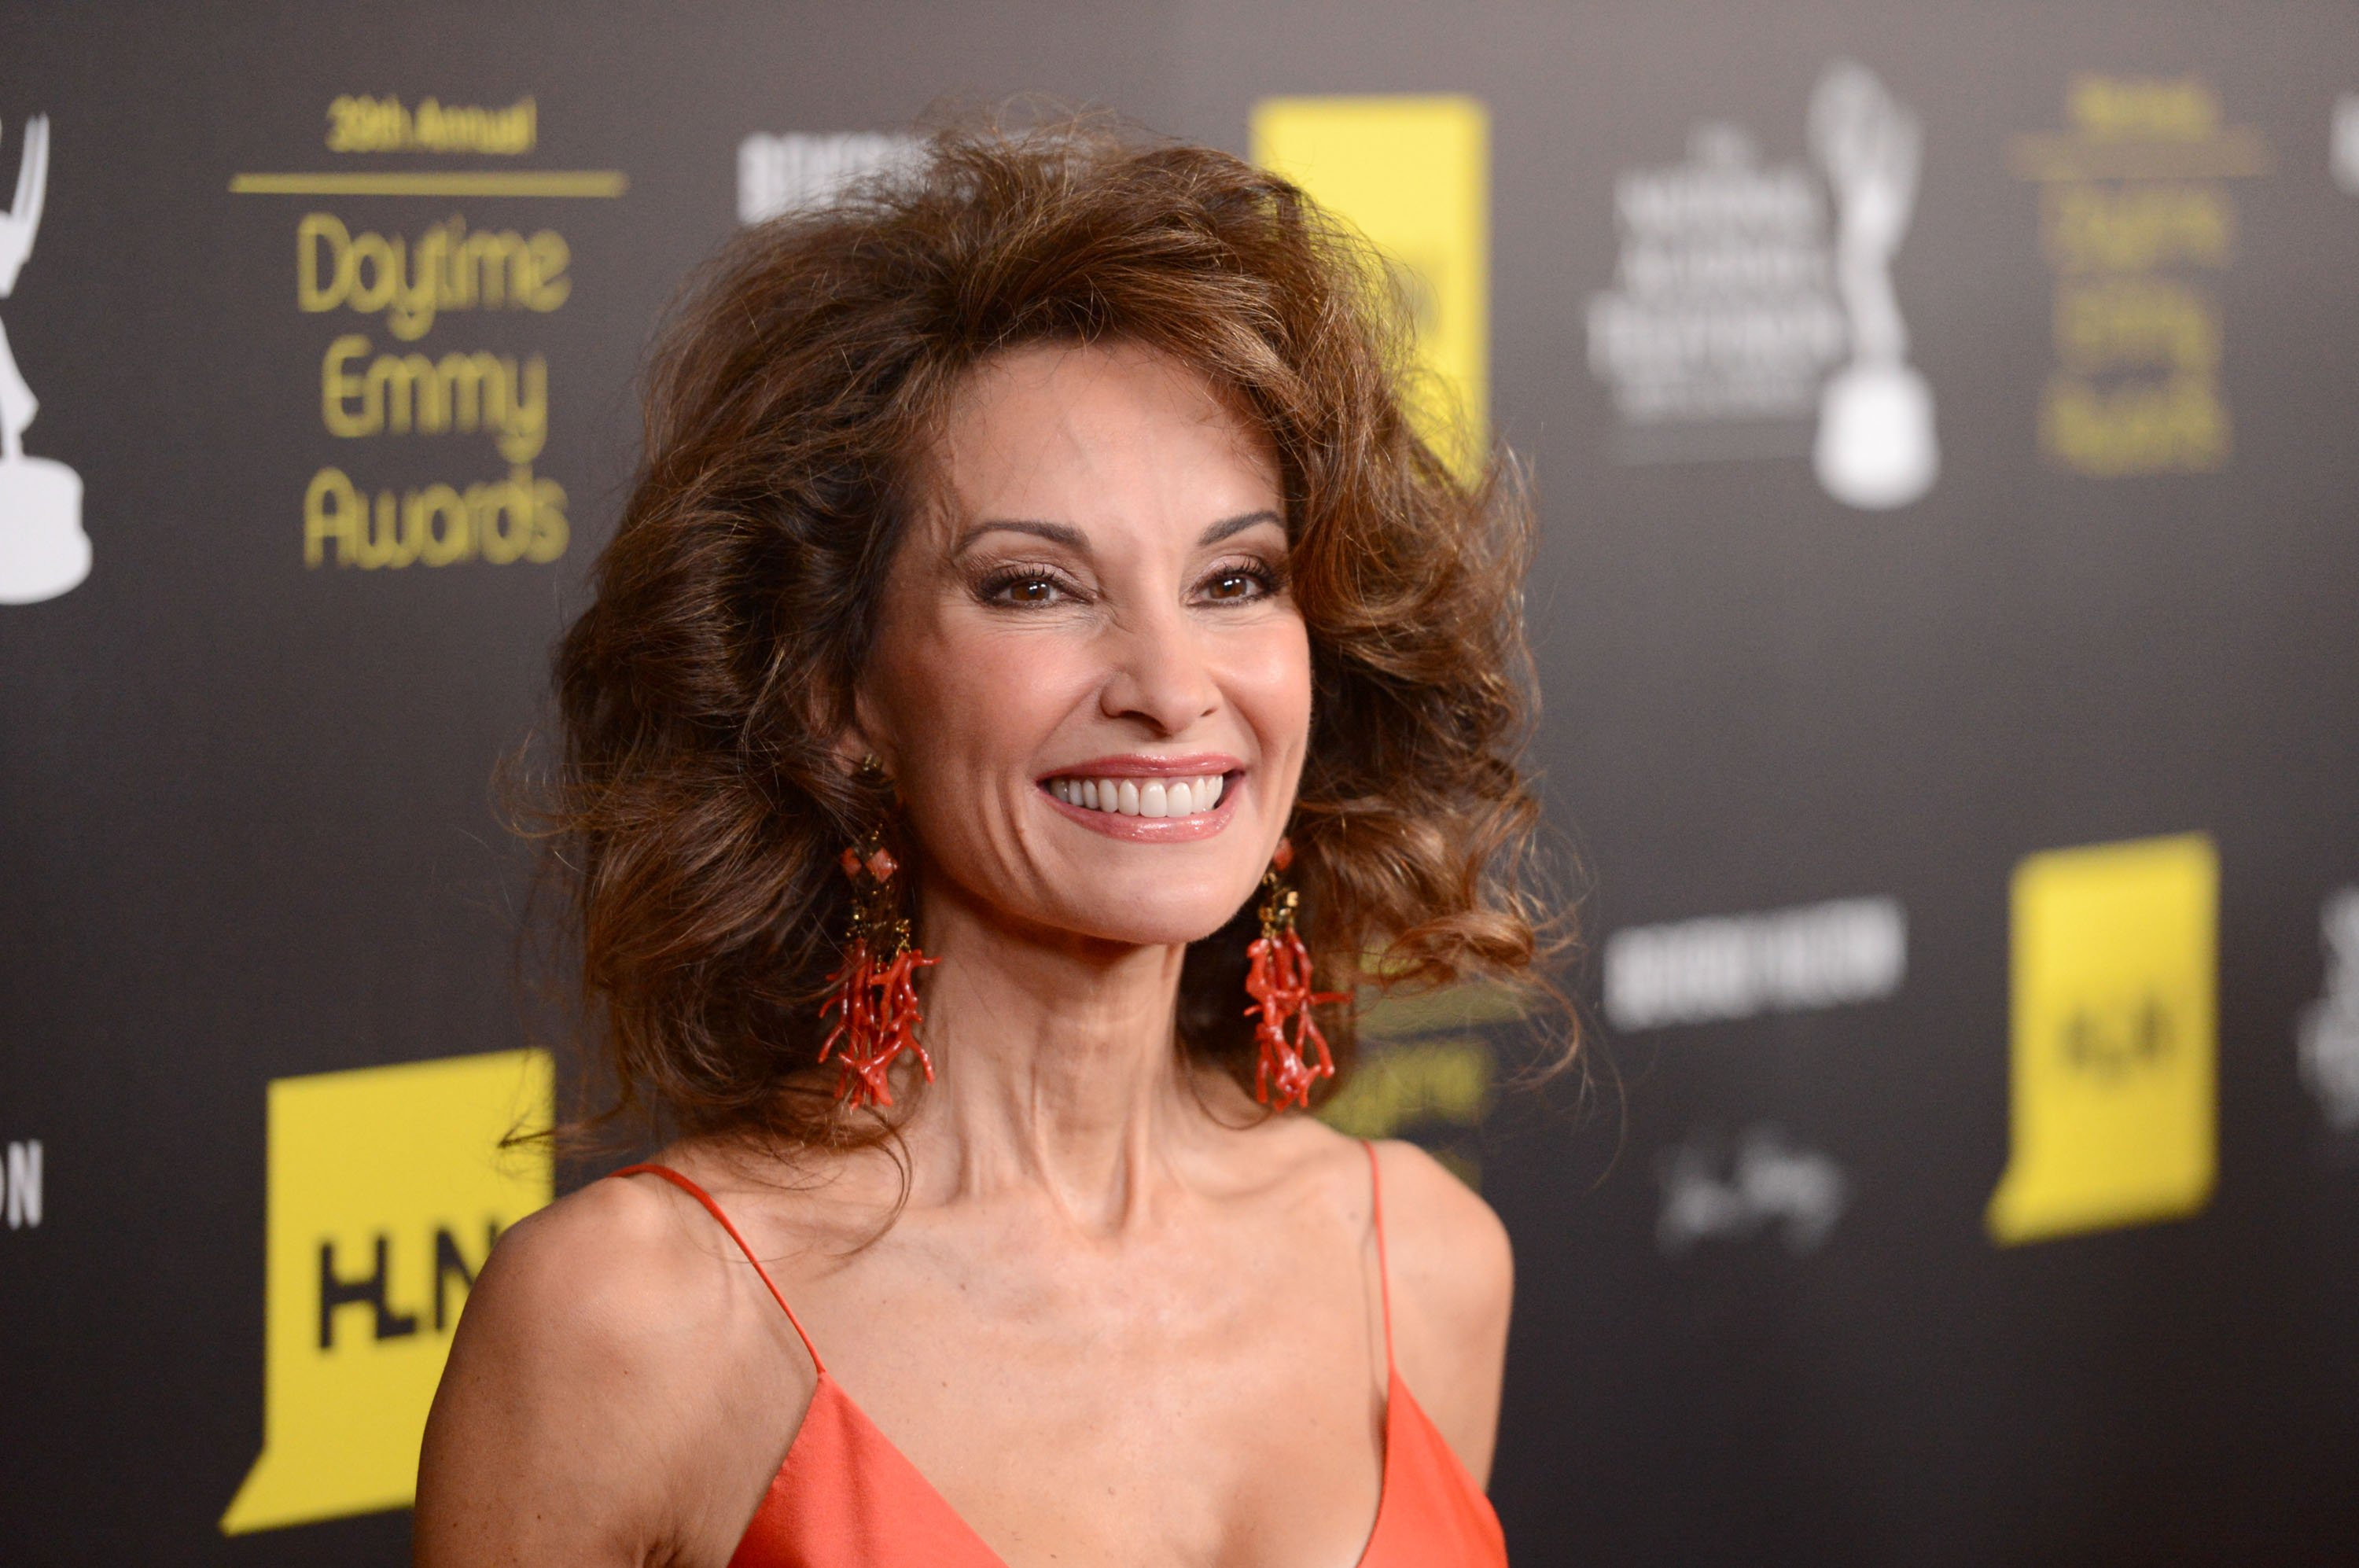 Susan Lucci pictured at The 39th Annual Daytime Emmy Awards broadcasted on HLN, 2012, Beverly Hills, California. | Photo: Getty Images